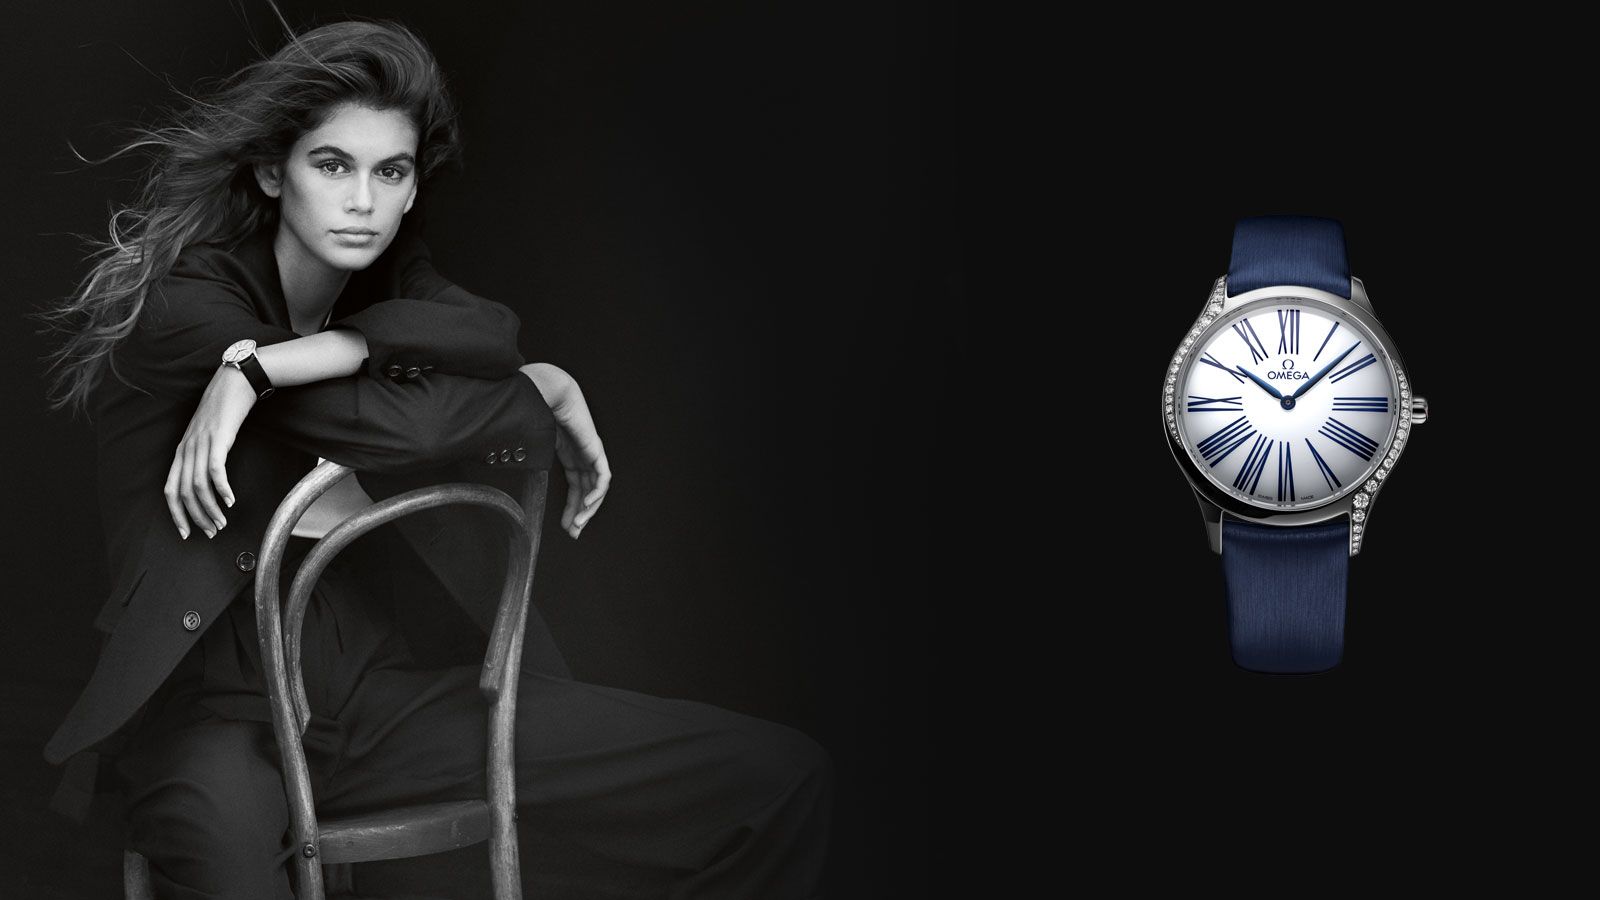 Black and white photo of Kaia Gerber and the De Ville Trésor watch